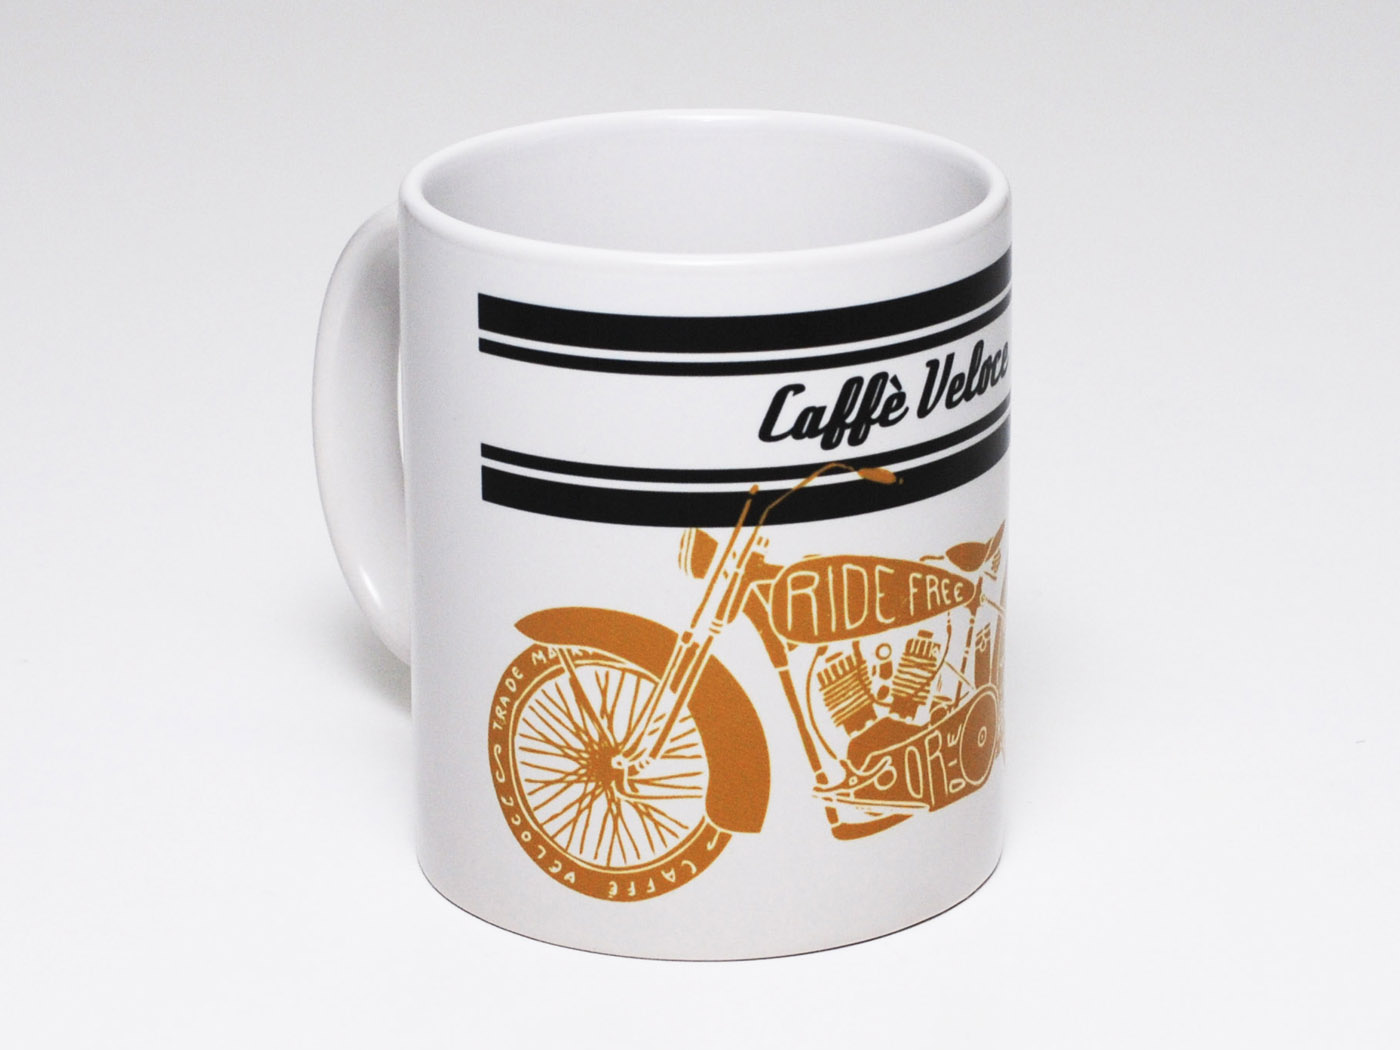 The Mug - Coffee mug